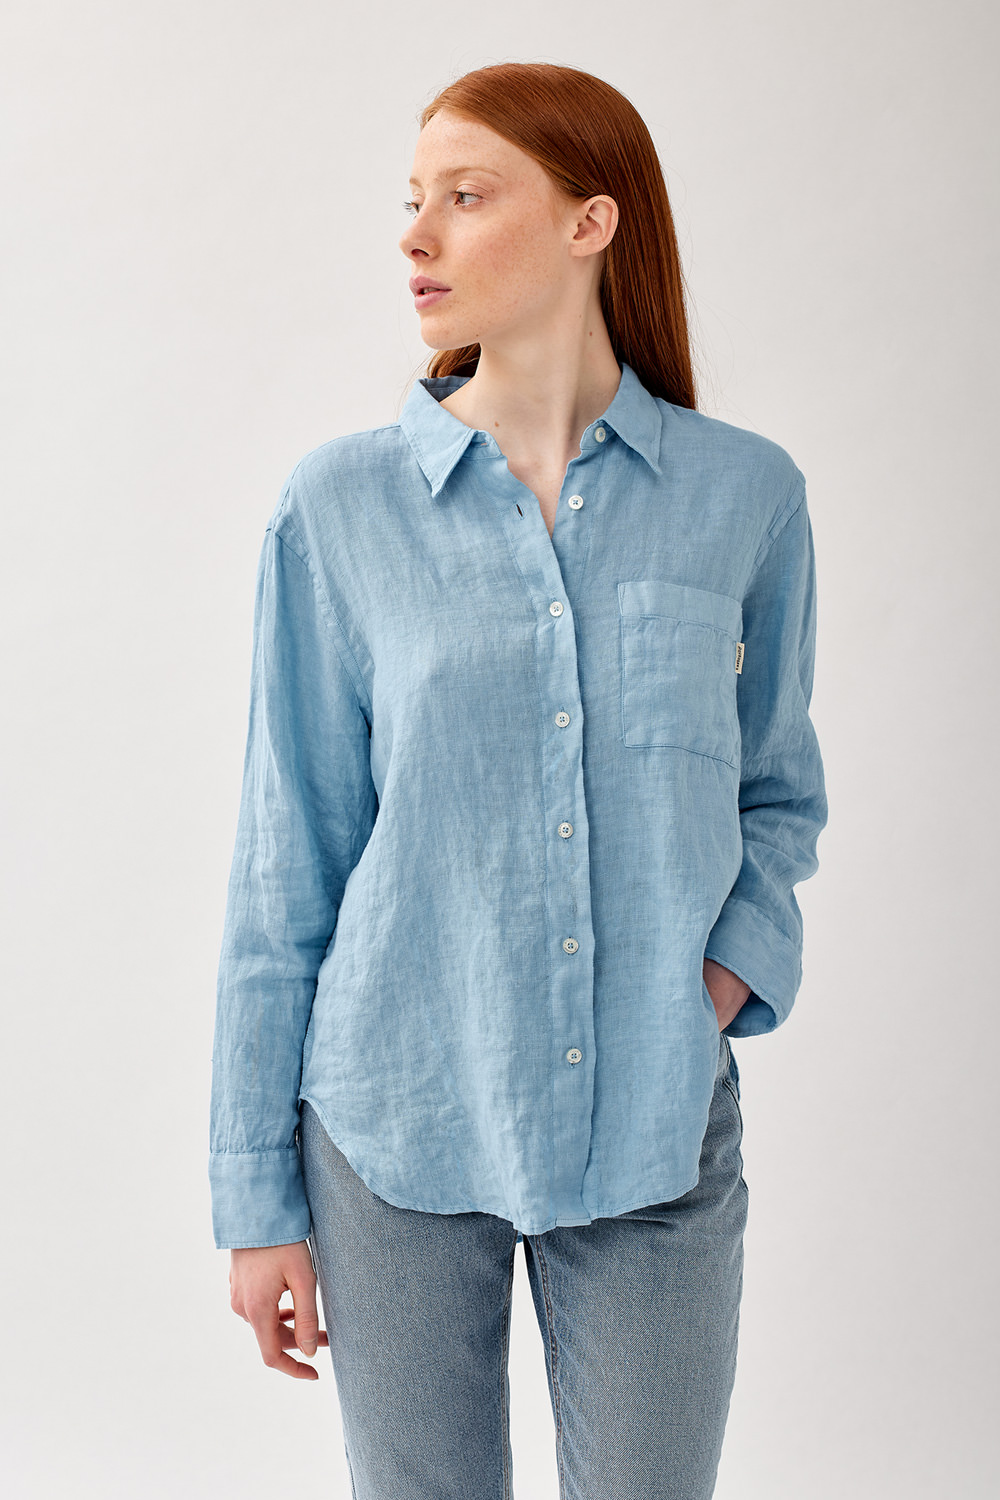 ROY ROGERS: EASY SHIRT IN DYED LINEN